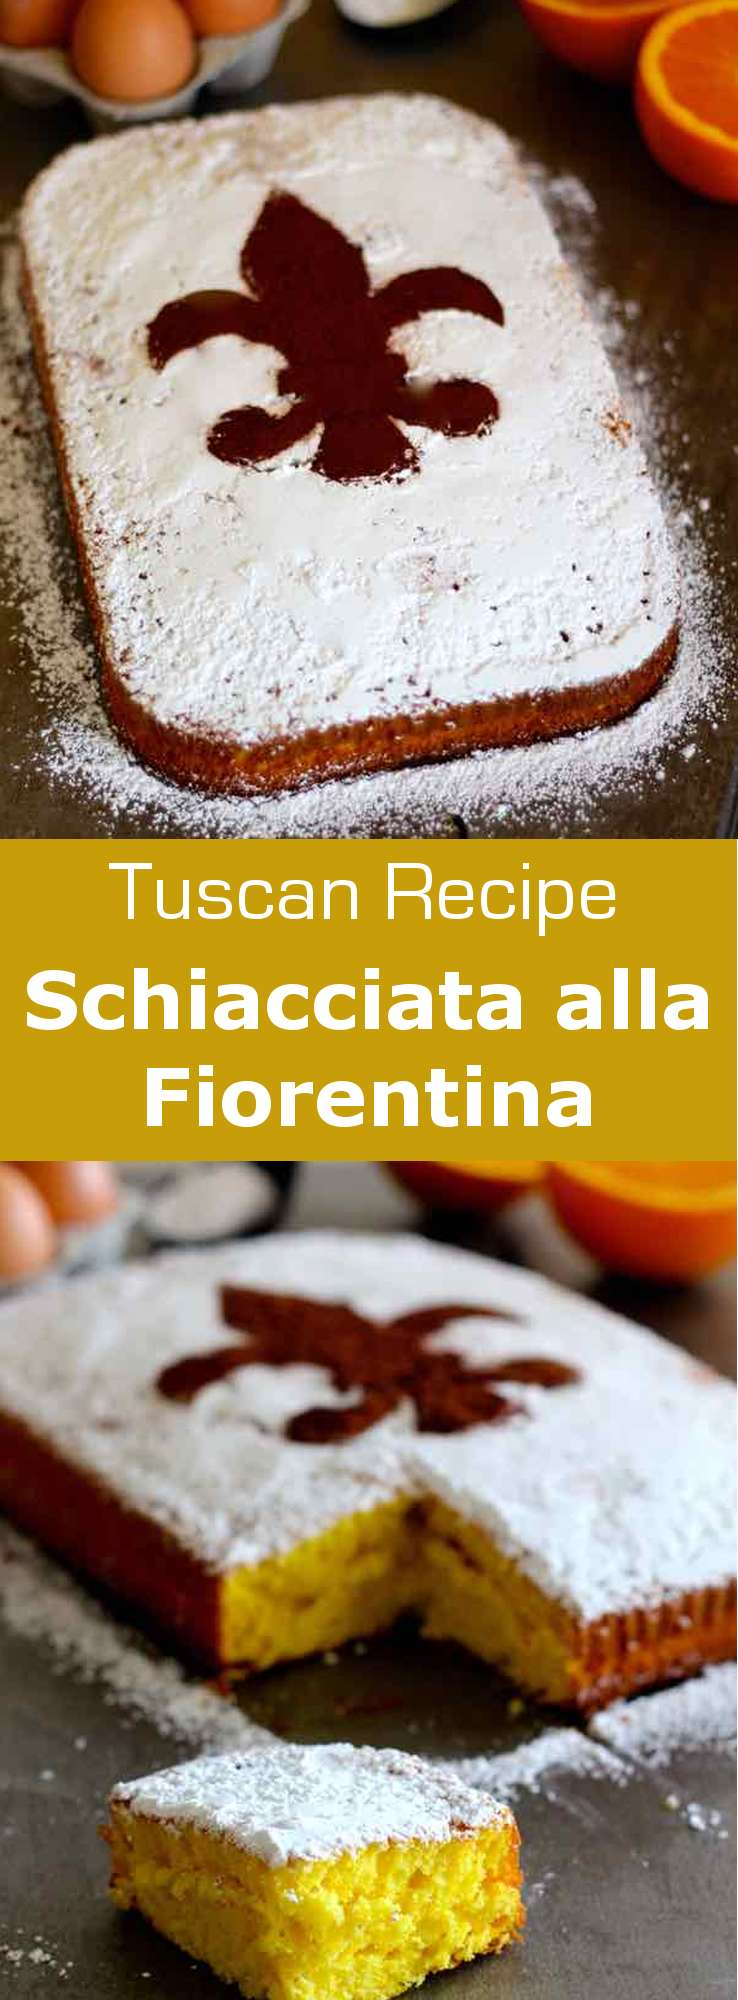 Schiacciata alla fiorentina is an orange-flavored cake that is emblematic of the carnival and mardi gras period in Florence. #Italian #ItalianRecipe #ItalianDessert #ItalianCake #WorldCuisine #196flavors